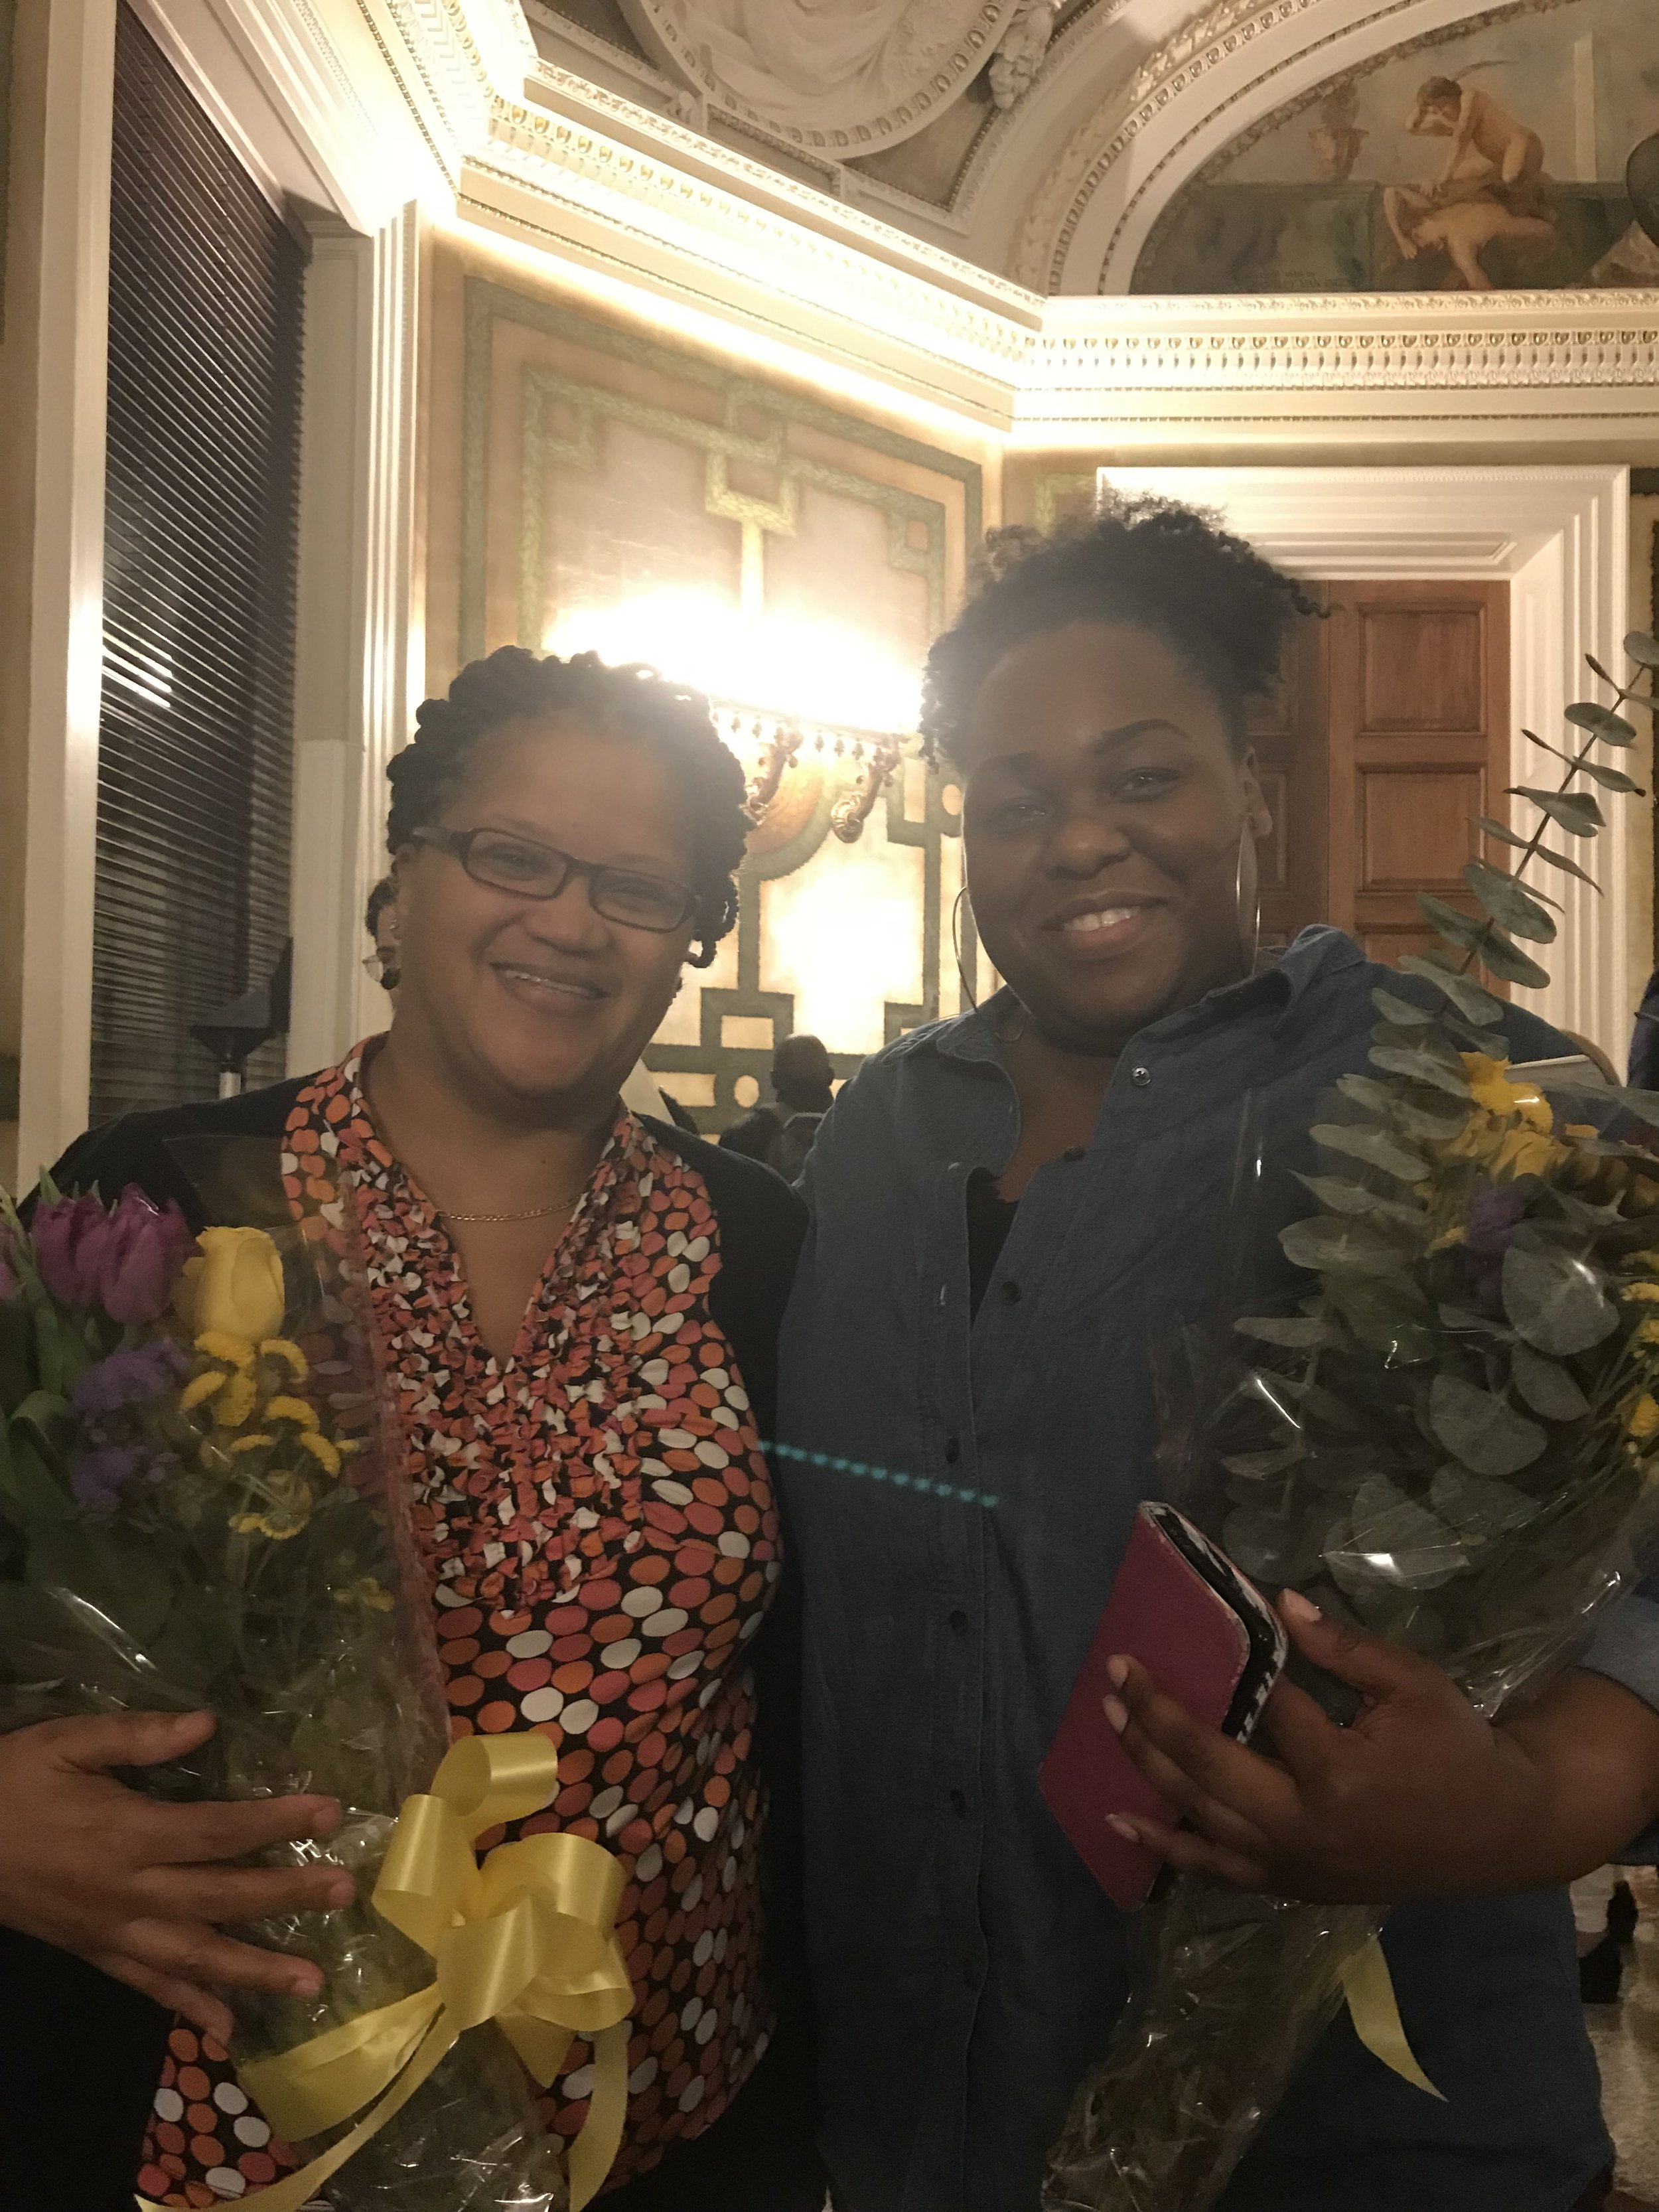 Library of Congress staff, who assisted in research and library services for  The Santillana Codes , honored with flowers.  Thank you.